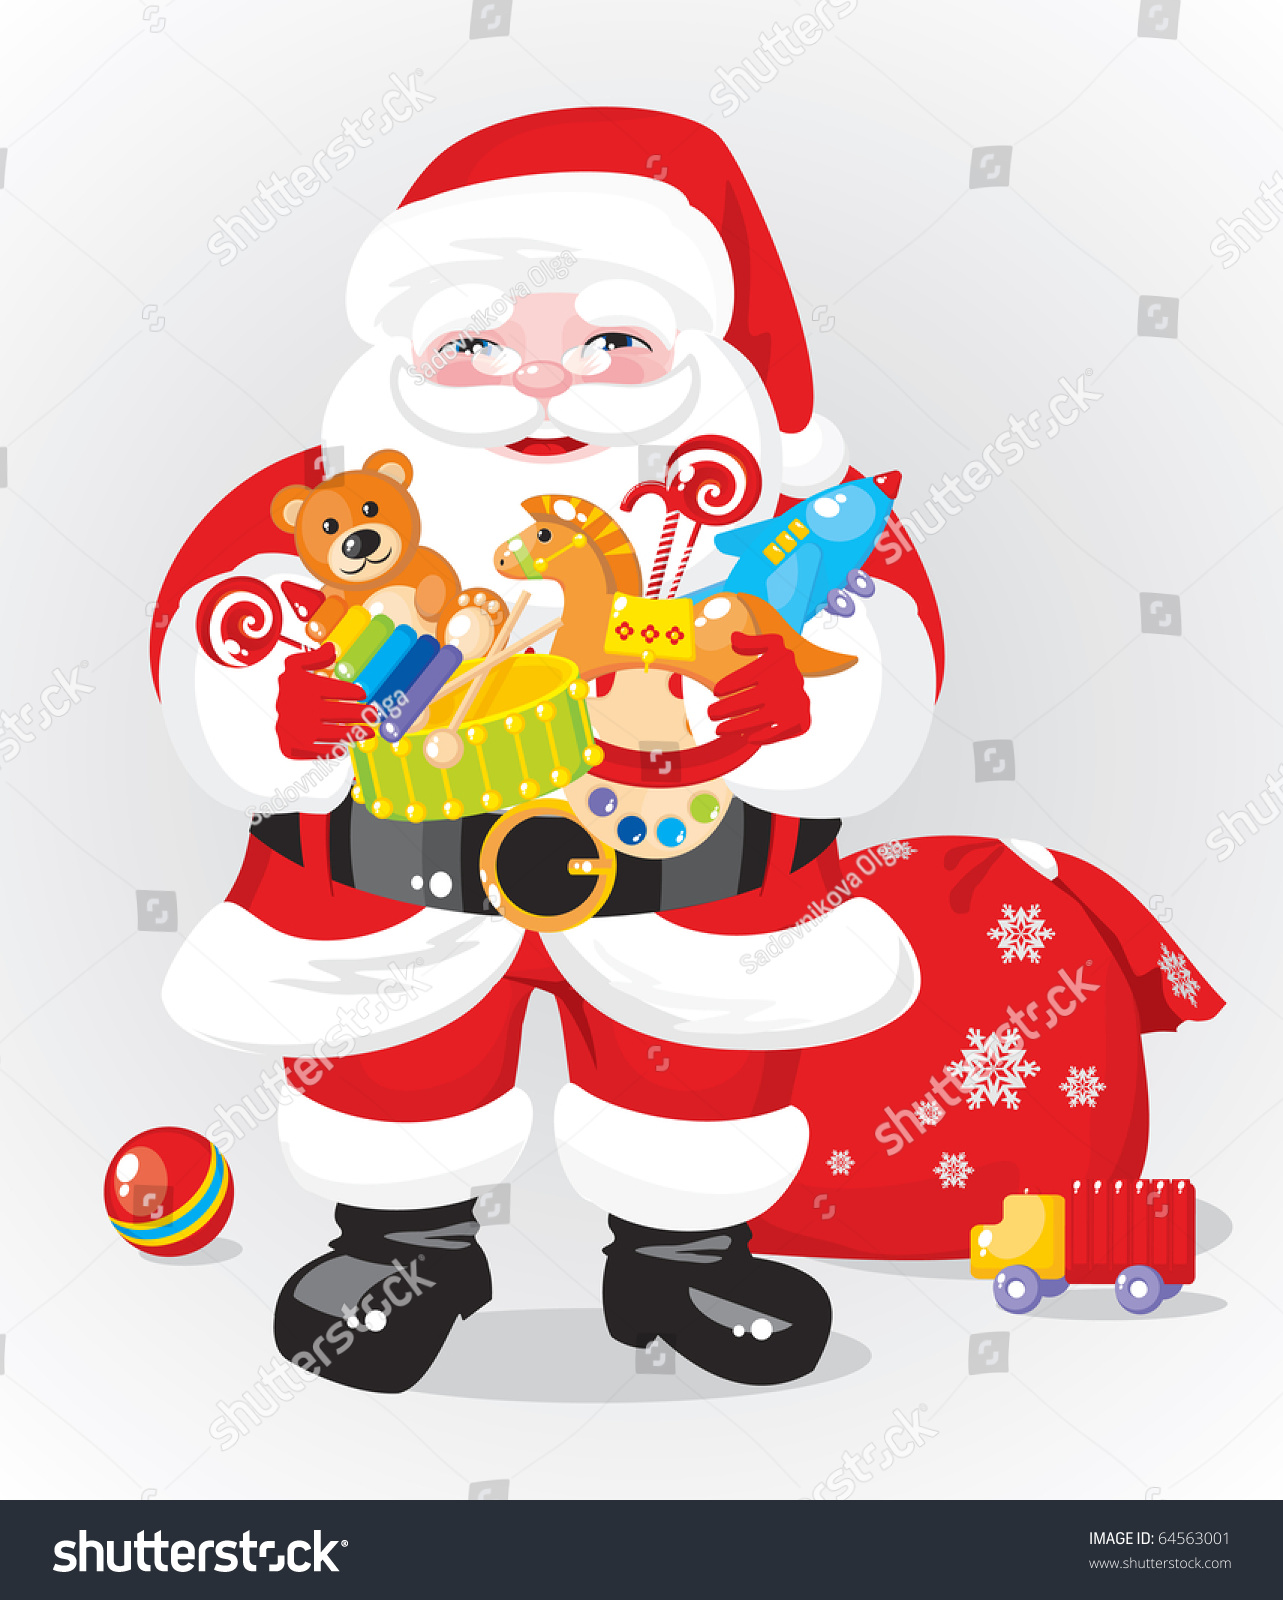 Santa claus with gifts toys stock vector illustration